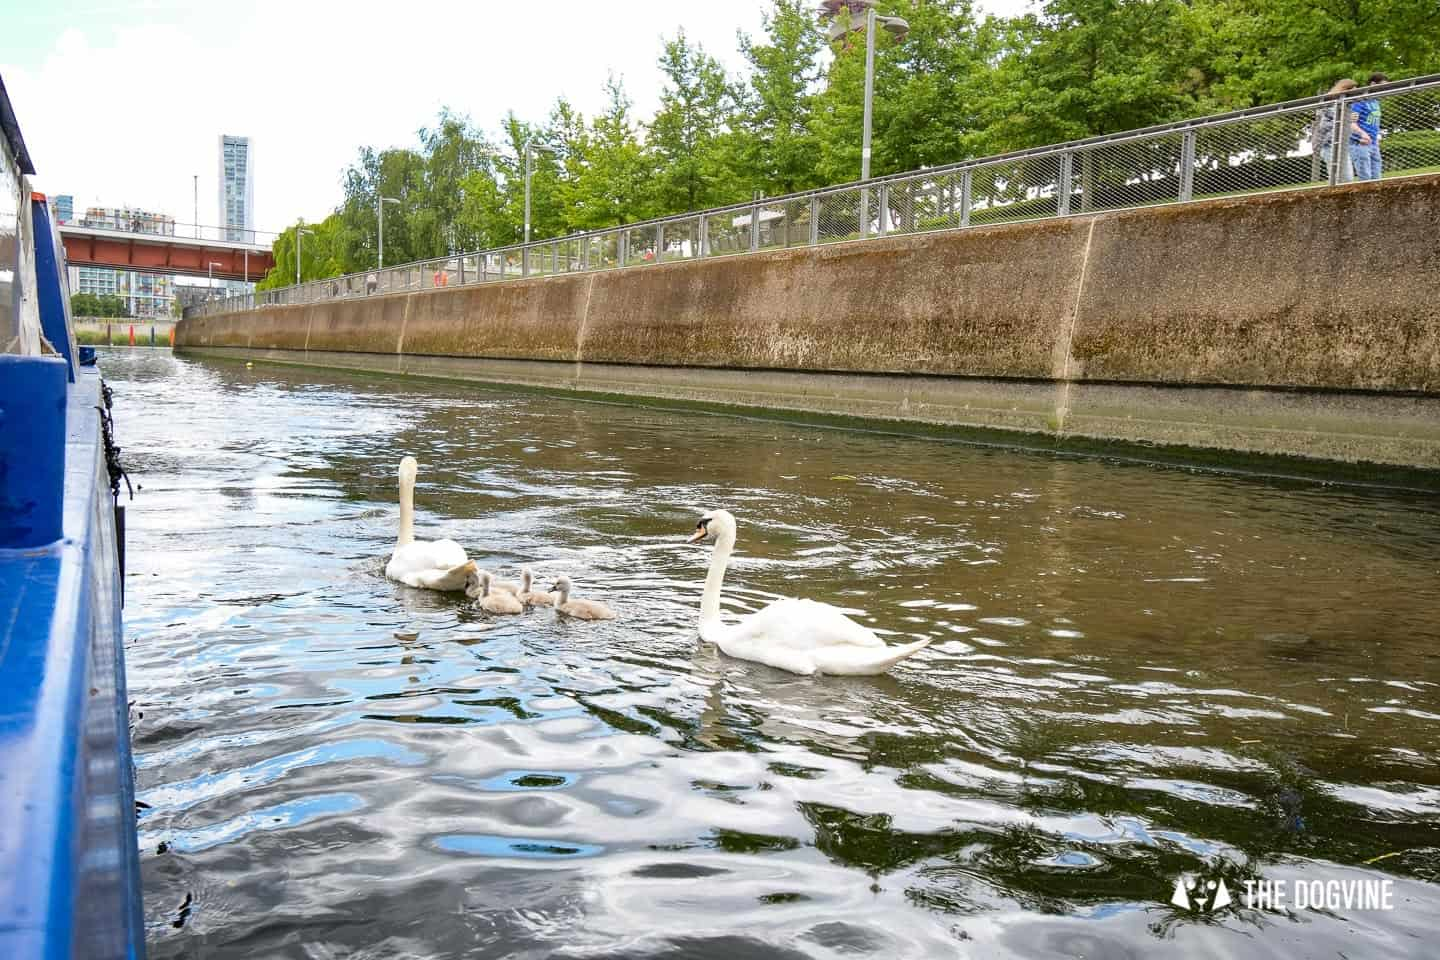 Queen Elizabeth Olympic Park Dog-friendly Boat Tours London - Lee and Stort 16